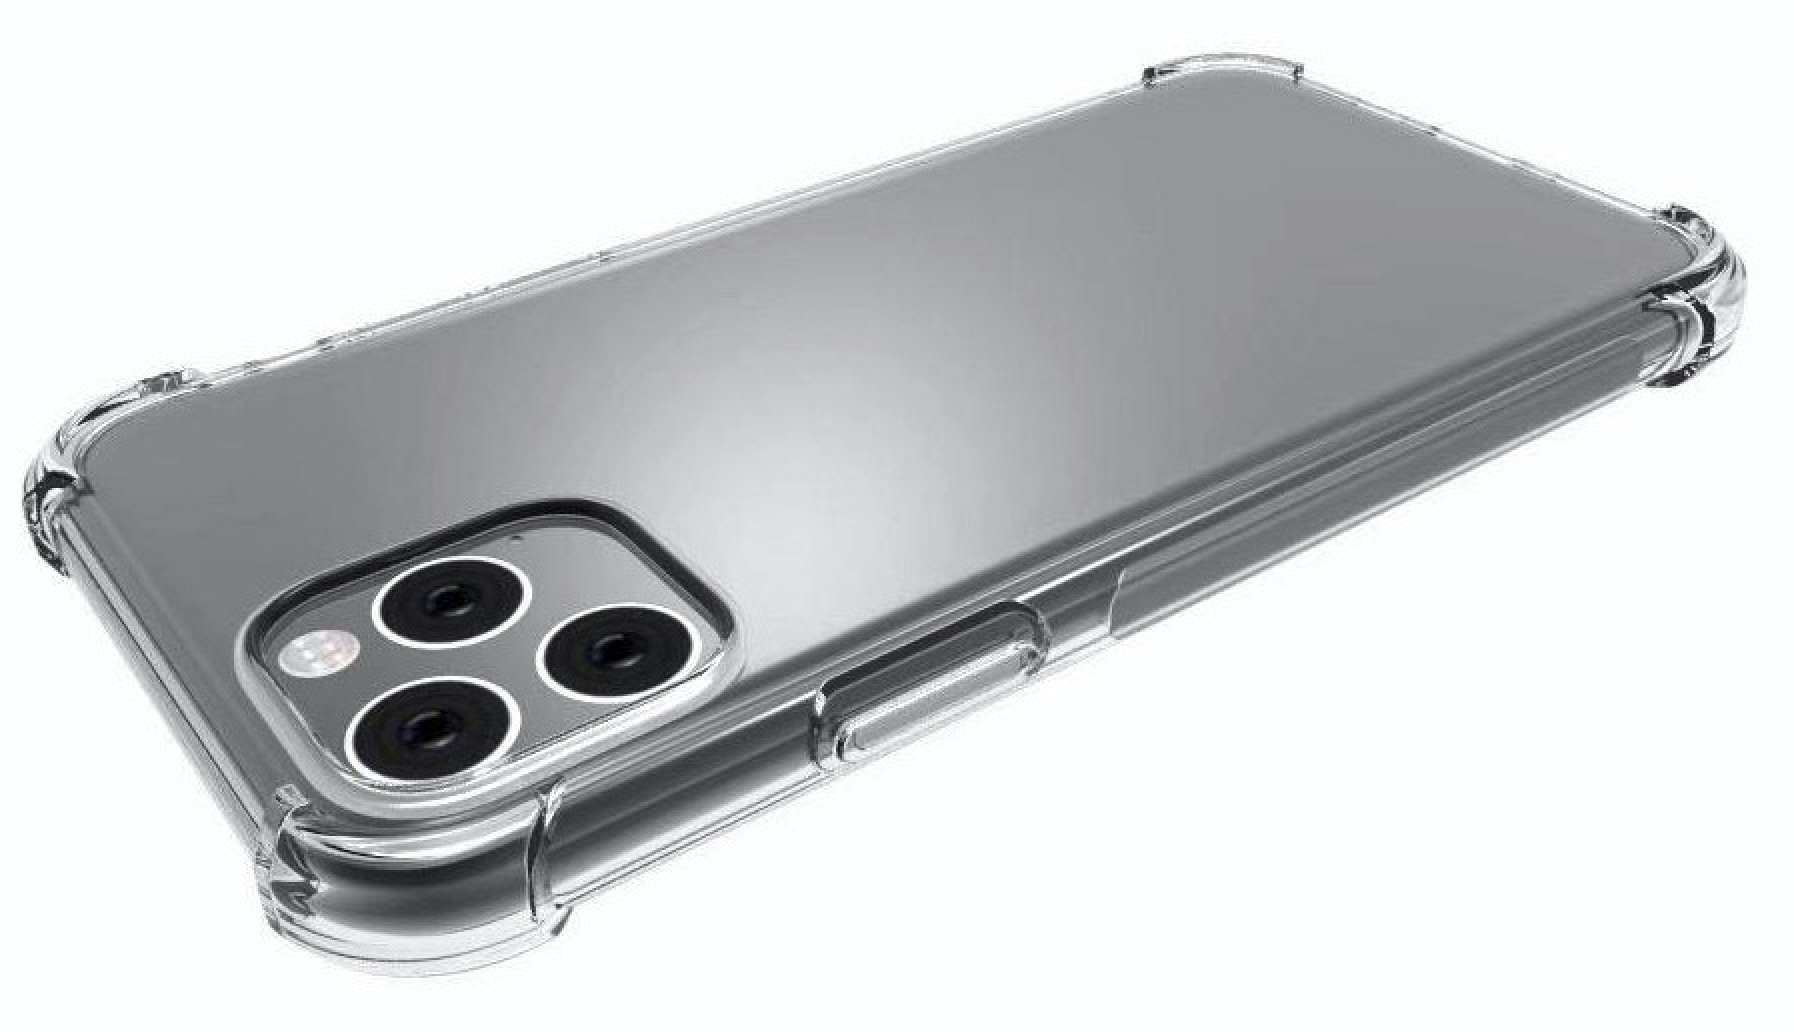 2019 OLED iPhone Case Renders Mirror Leaked Design